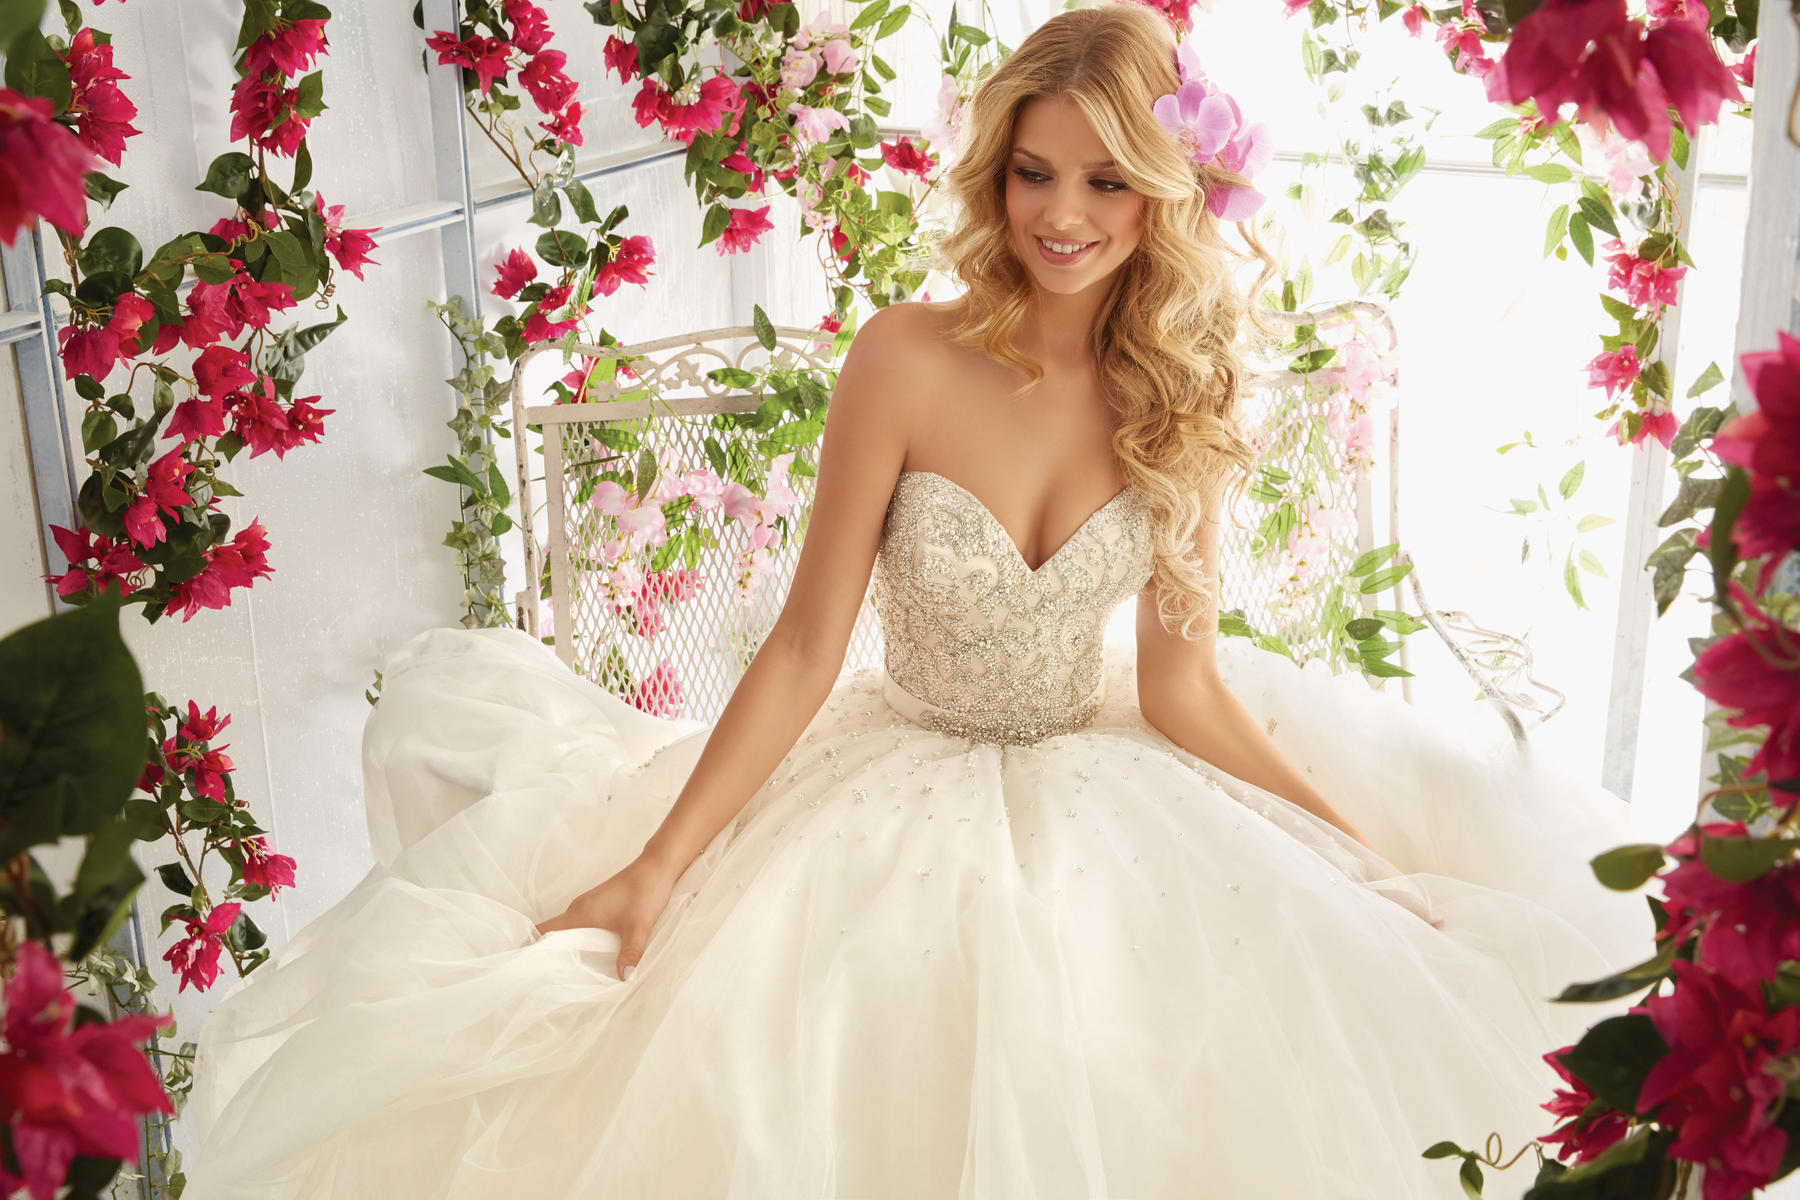 Blossoms Bridal & Formal Dress Store